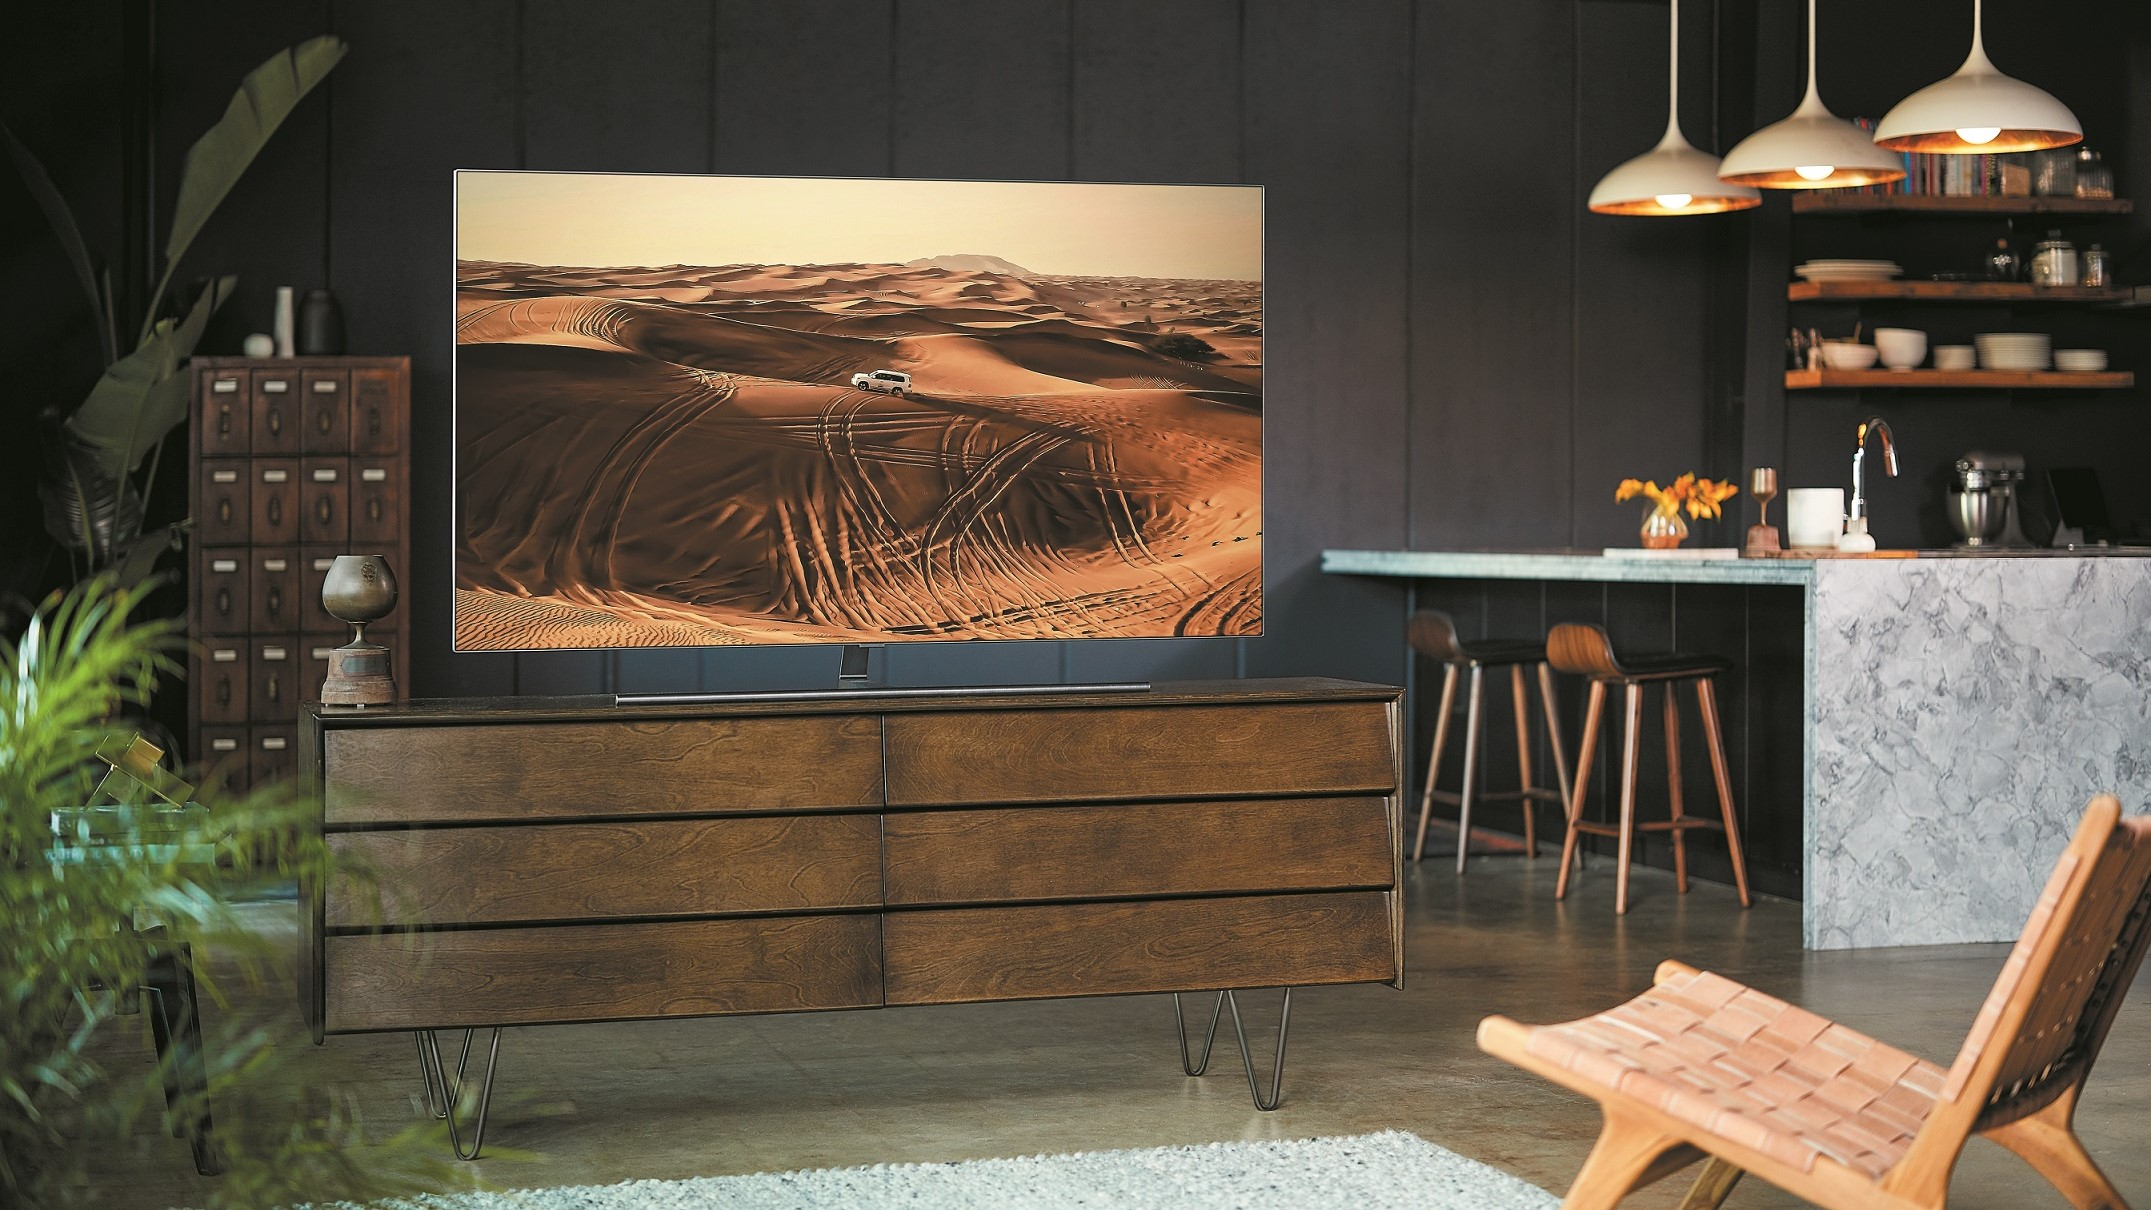 Best features of the new Samsung QLED TV - If you're upgrading your TV, Samsung's QLED range ticks all the boxes - Gizmodo